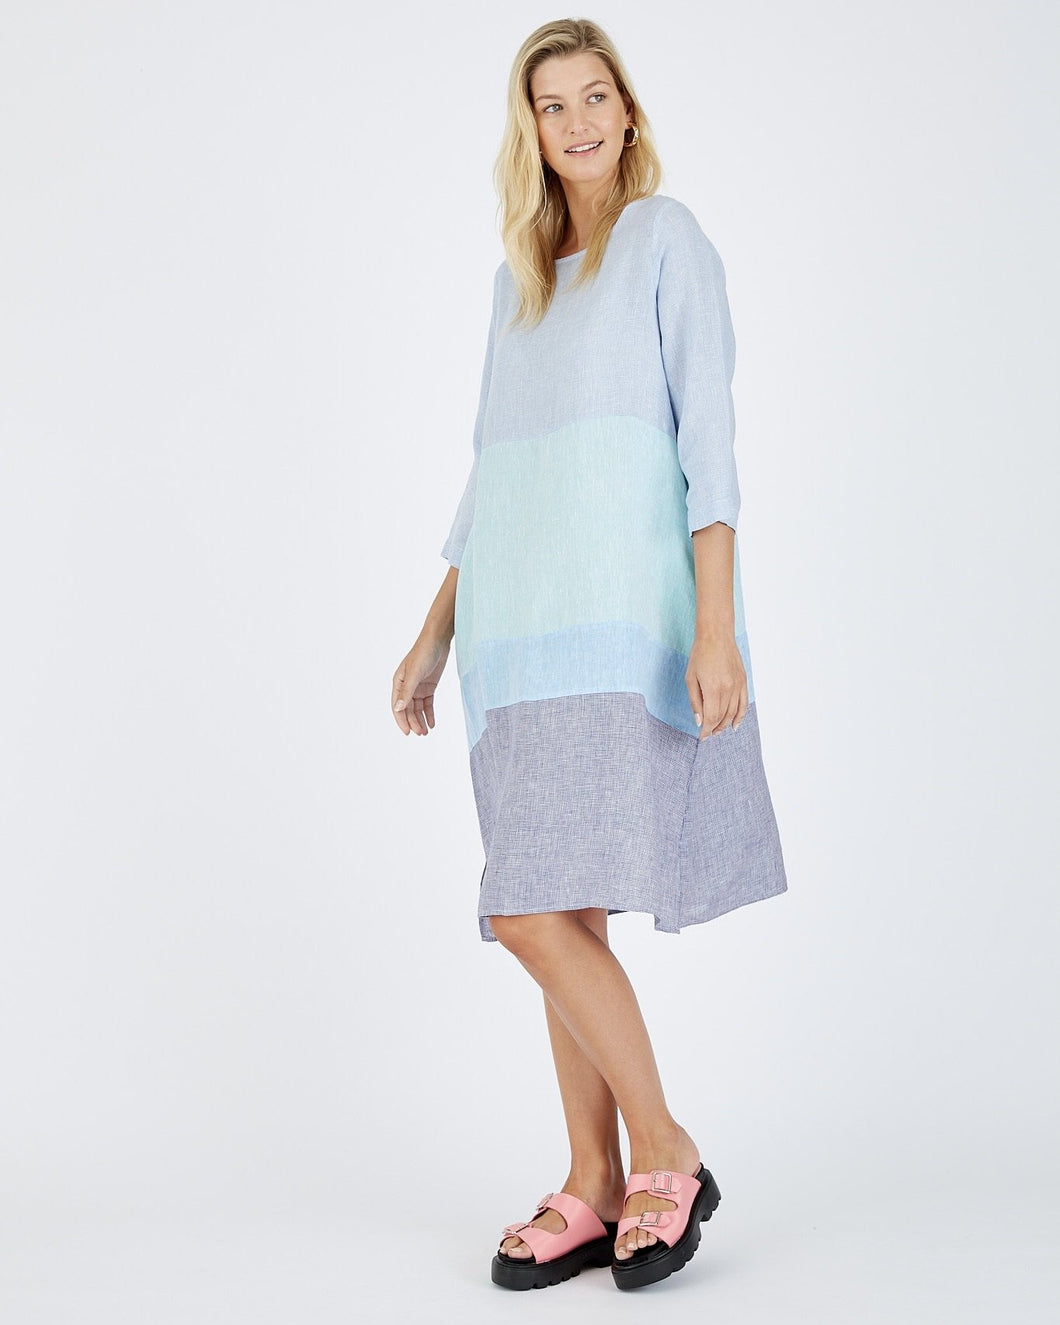 Rum and Raisin Dress in Blue by Alessandra